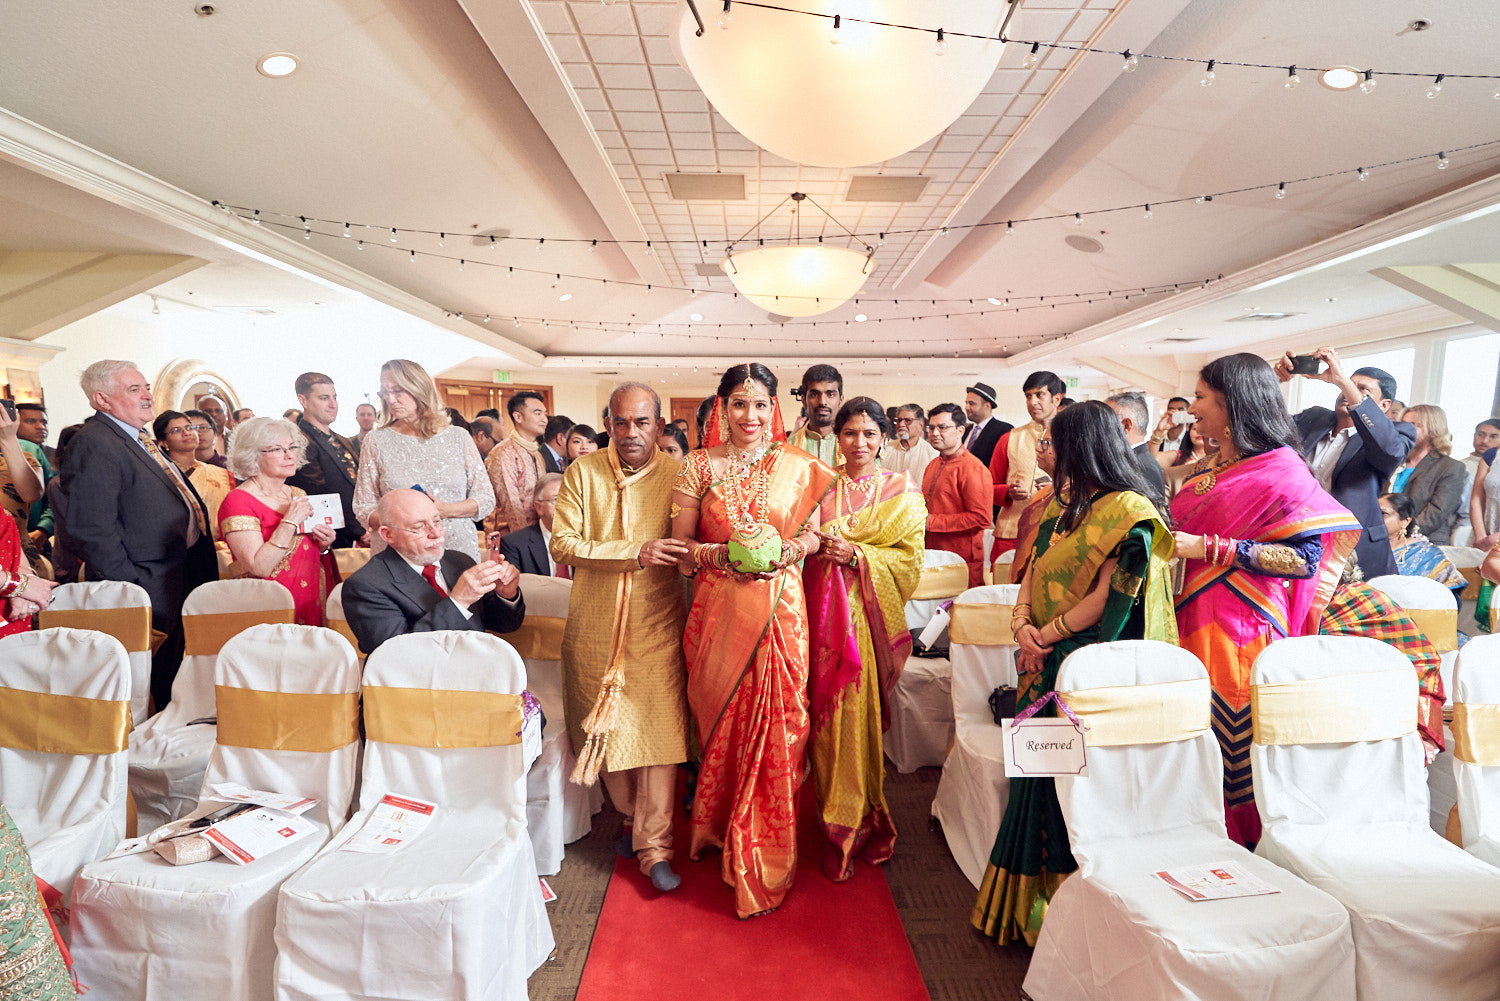 south-indian-wedding-ceremony-photography-by-afewgoodclicks-net-in-saratoga 109.jpg